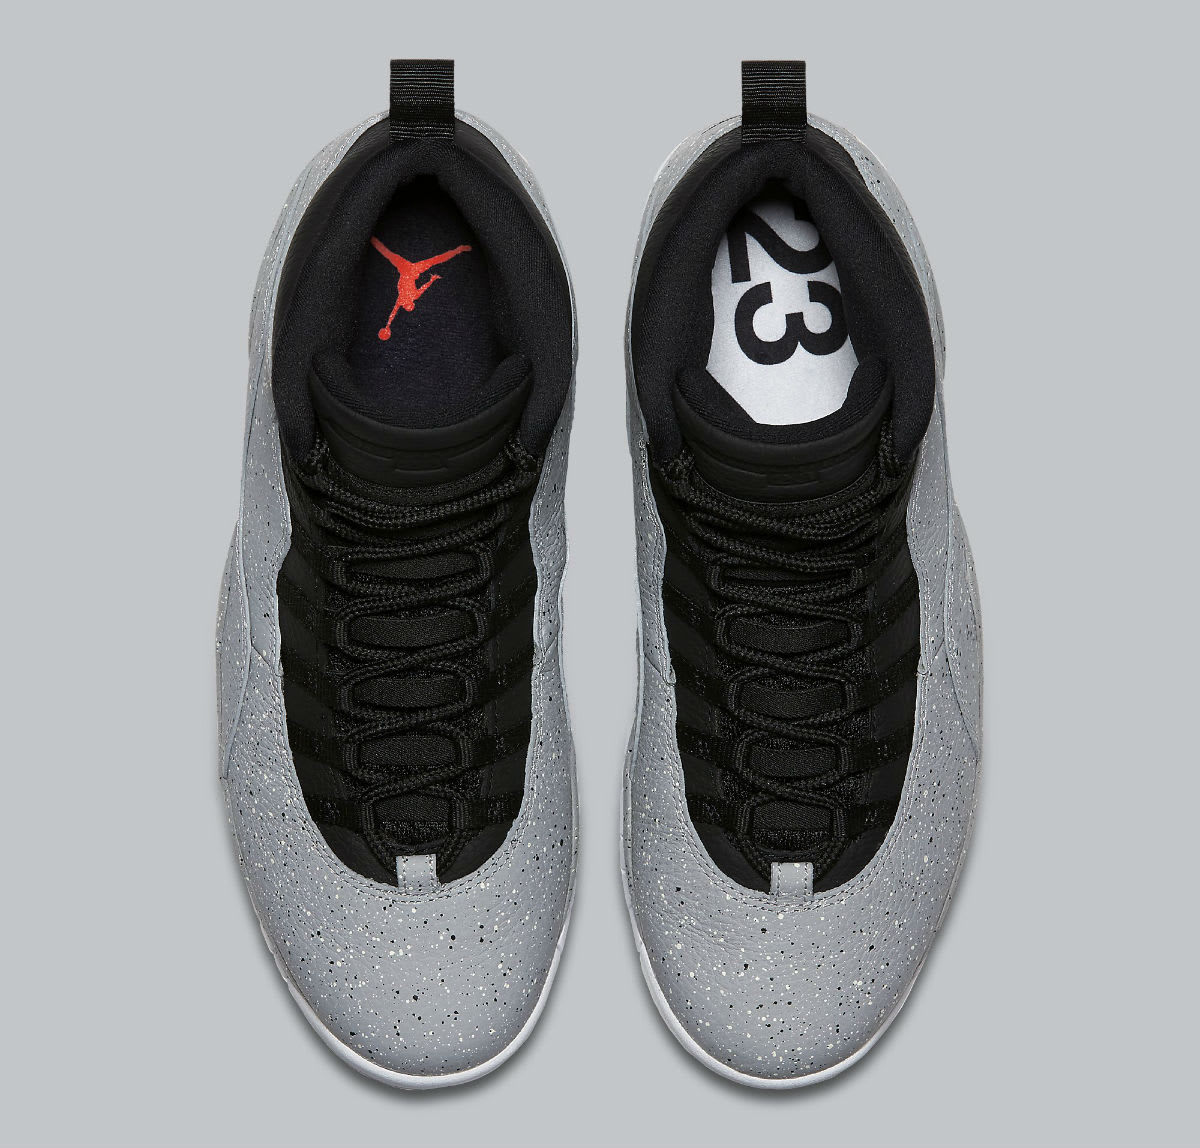 Air Jordan 10 X Cement Release Date 310805-062 Top